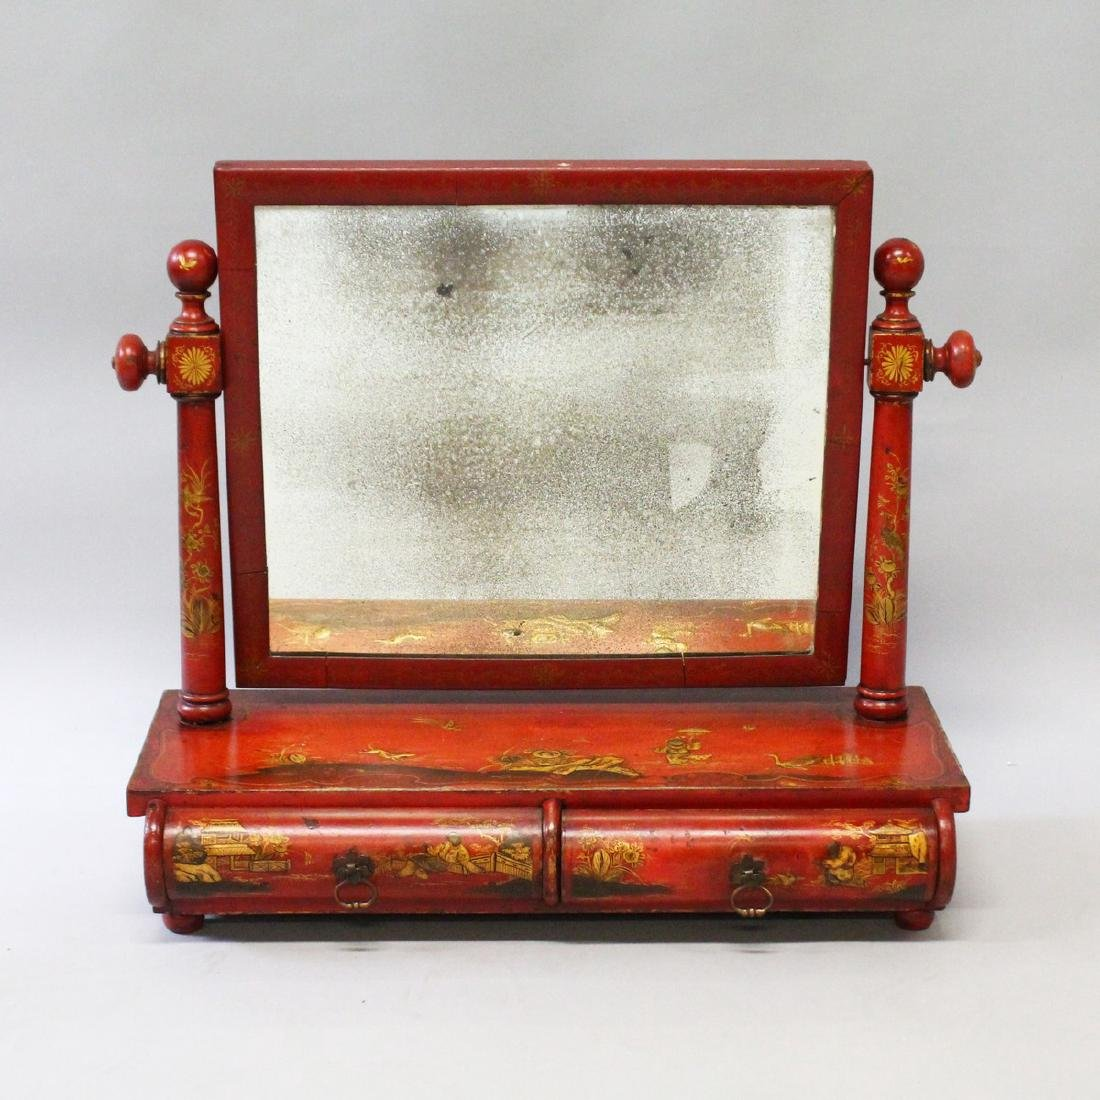 A 19th CENTURY LACQUER DRESSING MIRROR with red lacquer